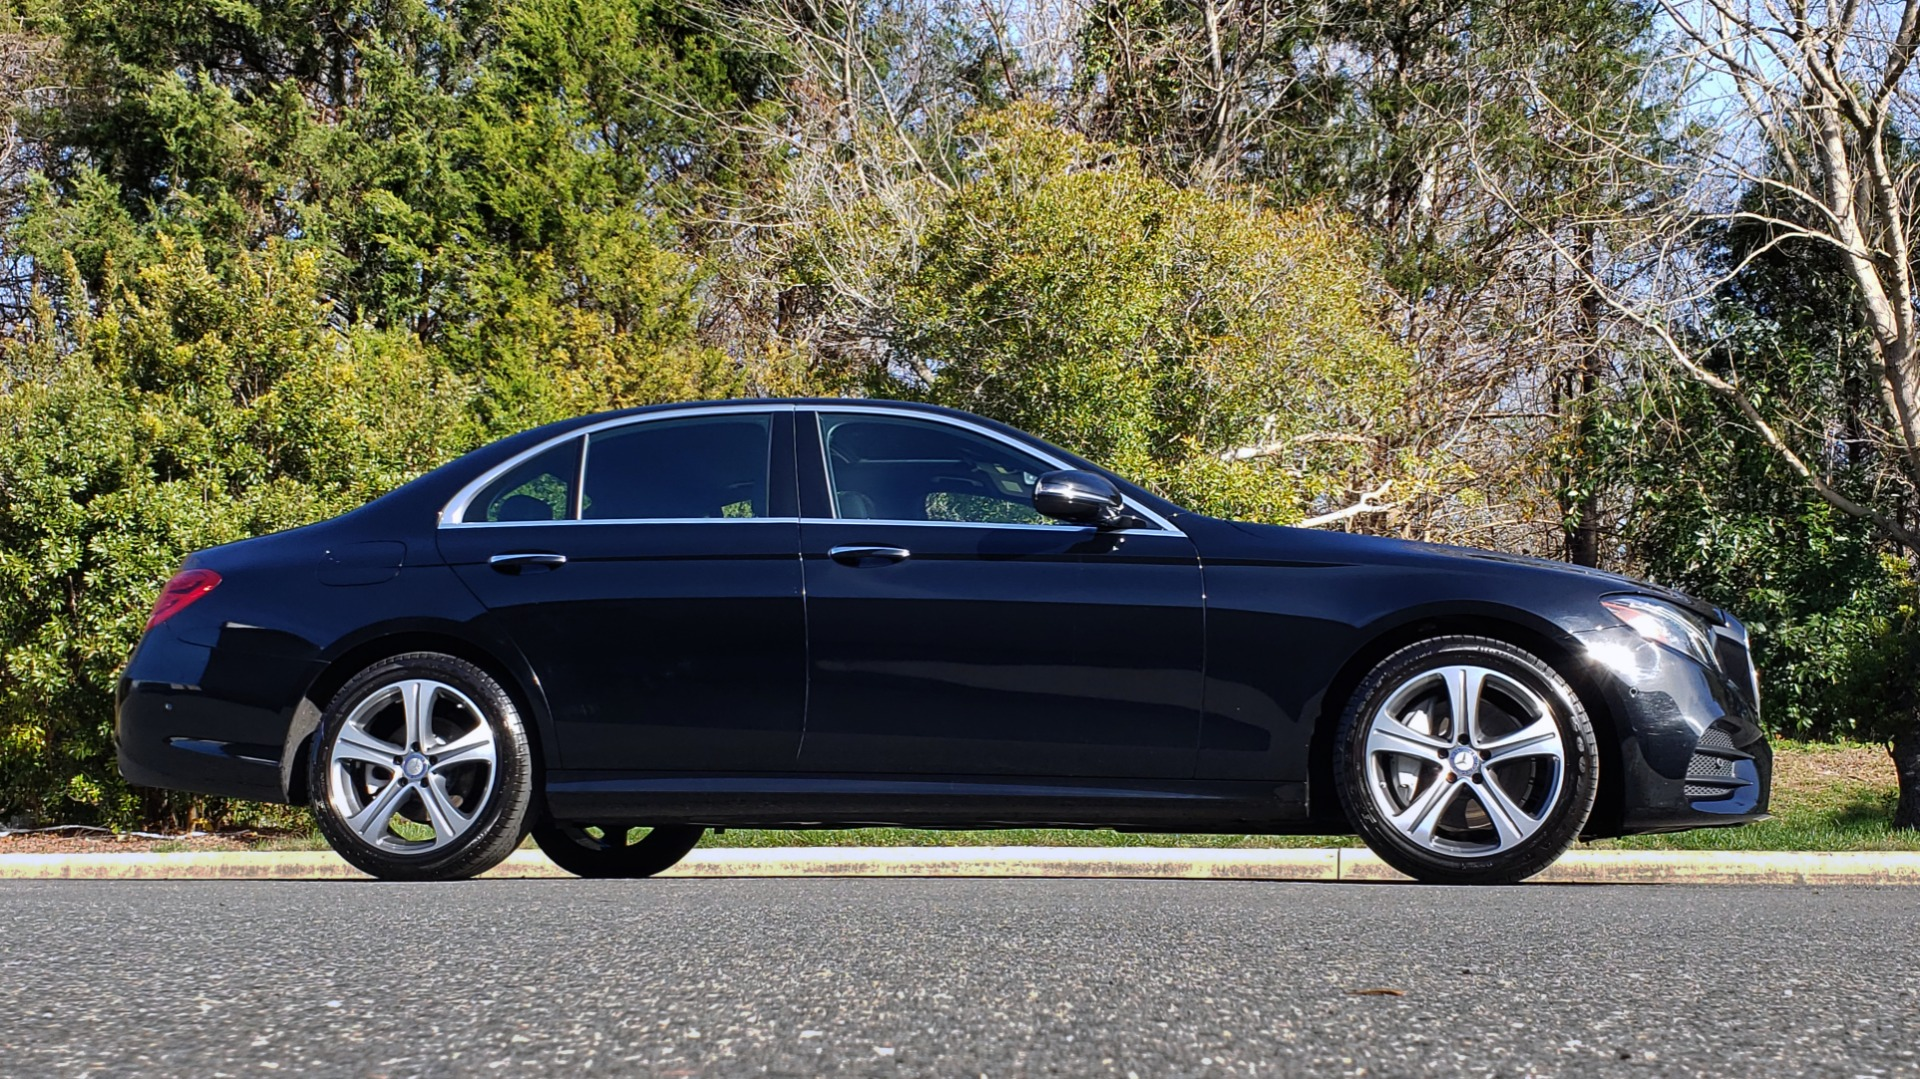 Used 2017 Mercedes-Benz E-CLASS E 300 PREMIUM / NAV / SUNROOF / BURMESTER / HTD STS / REARVIEW for sale Sold at Formula Imports in Charlotte NC 28227 5